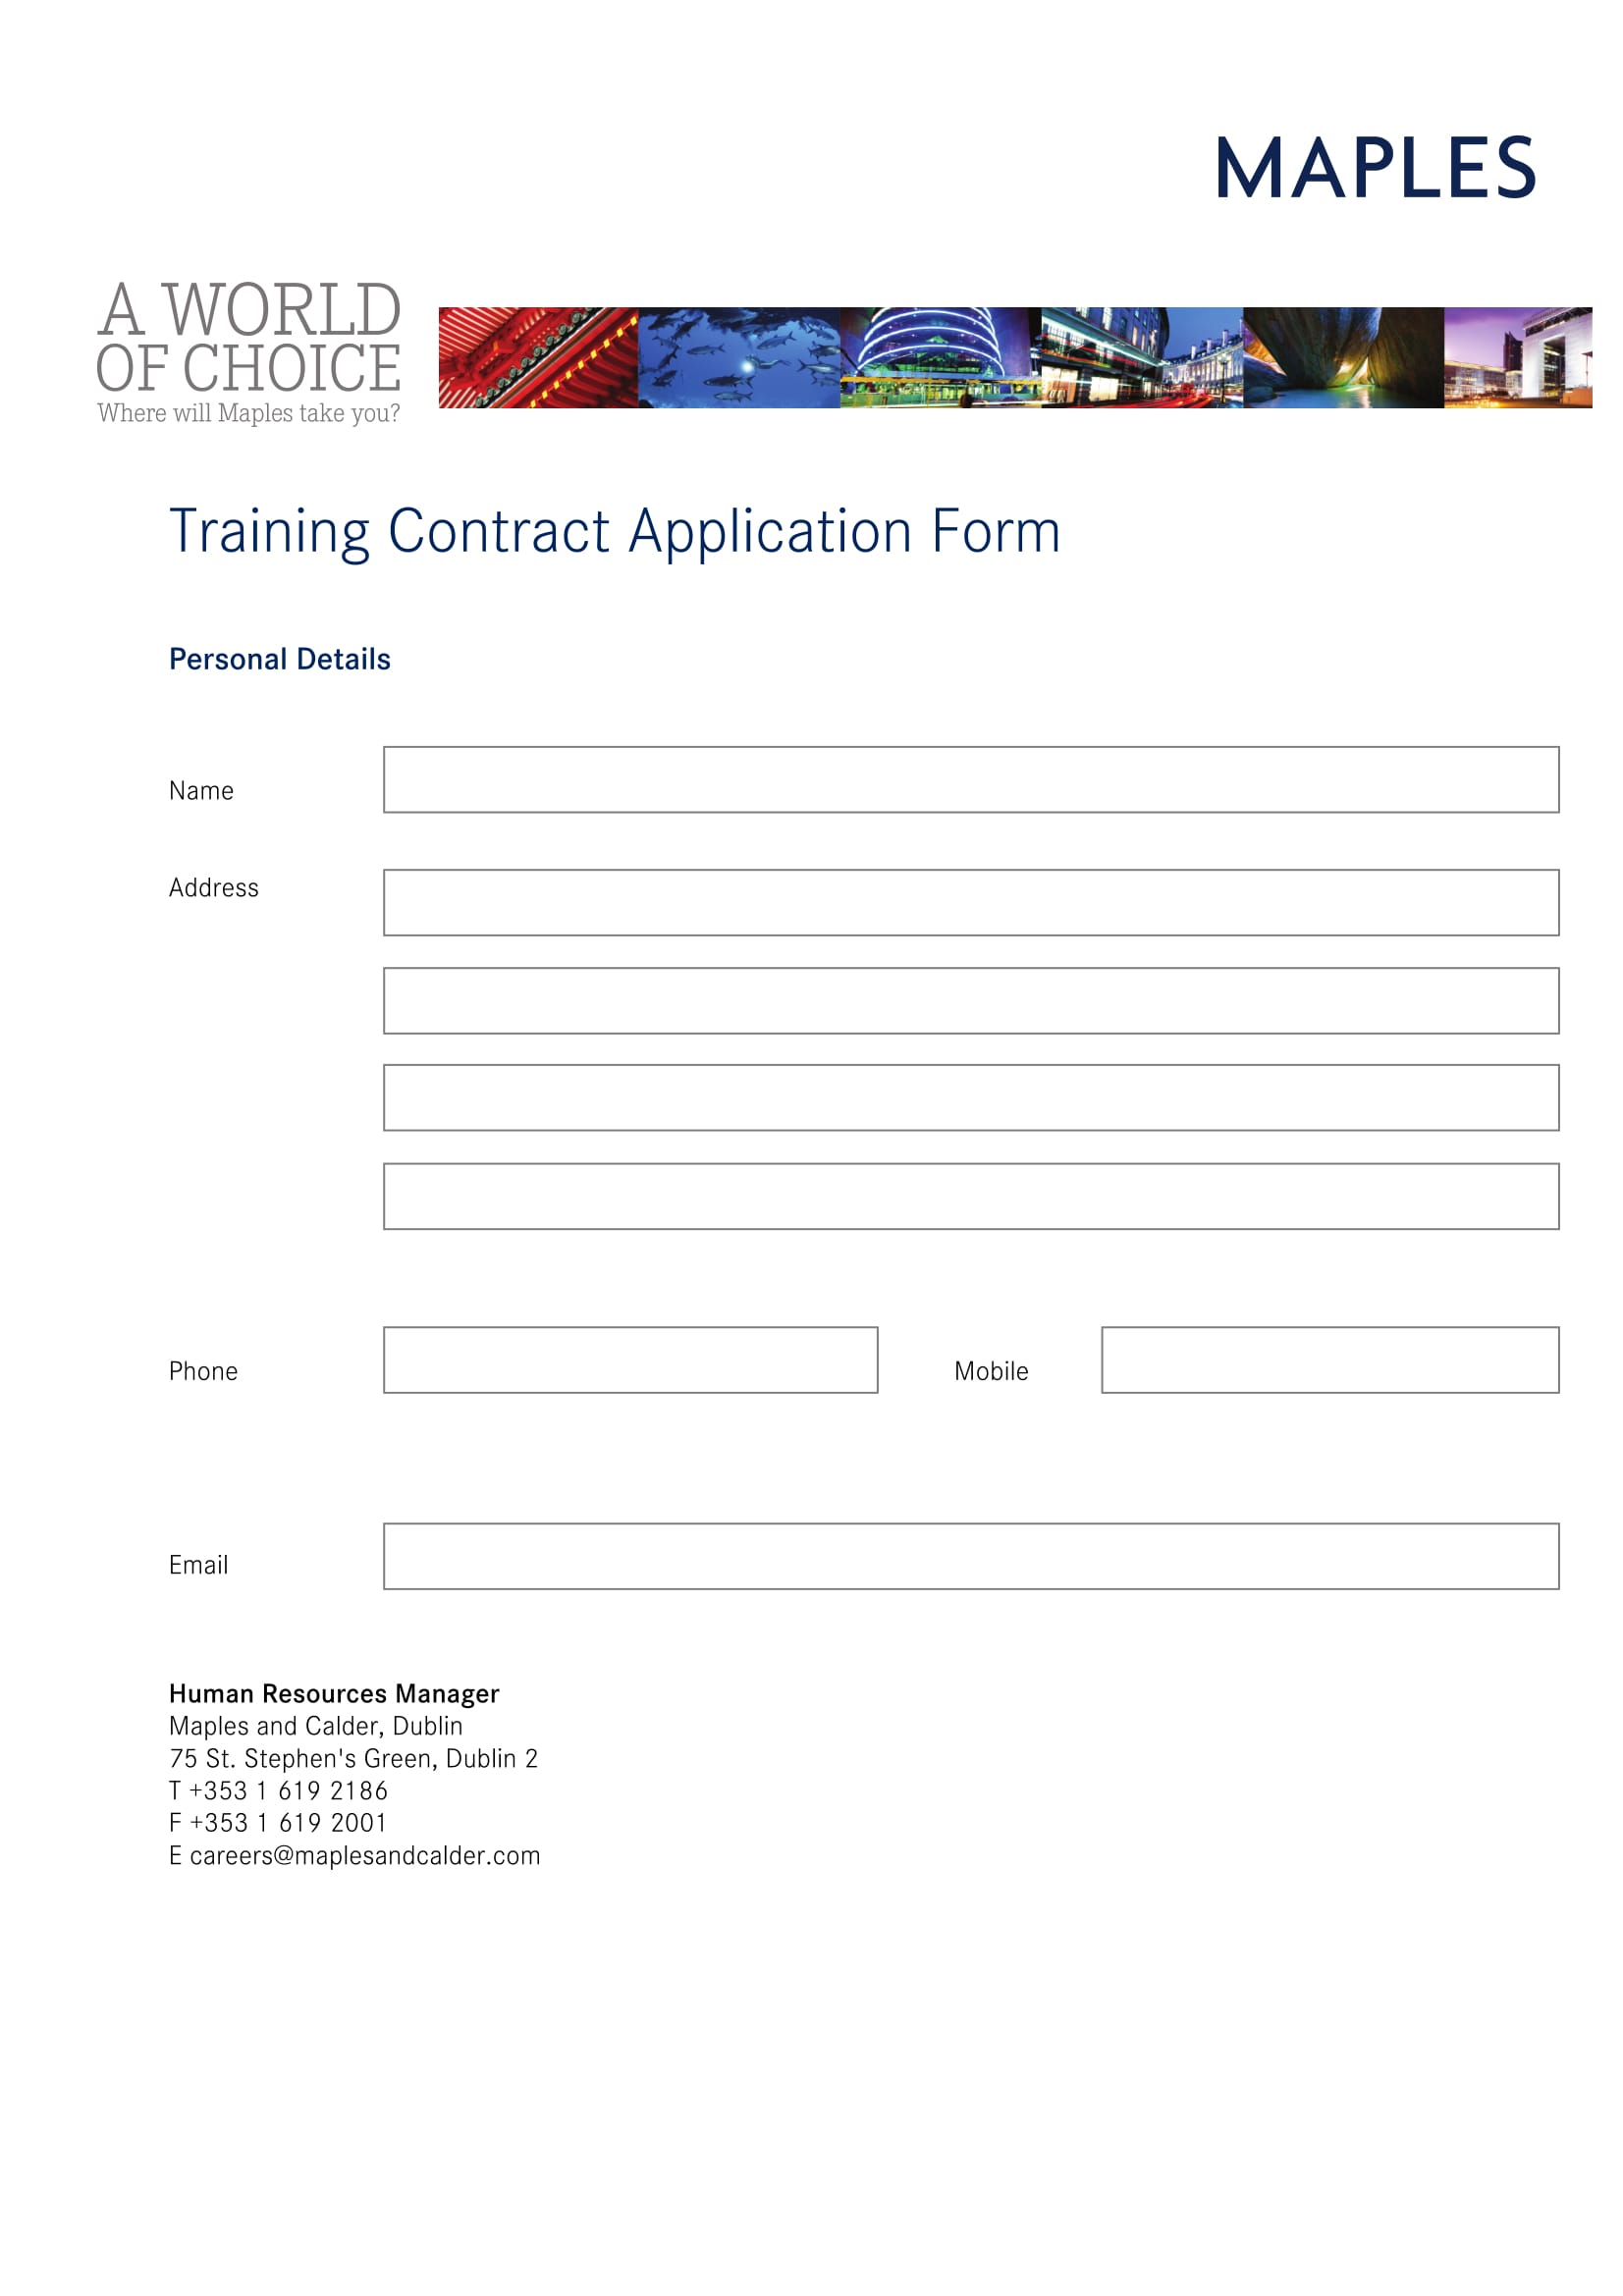 maples training contract application 2